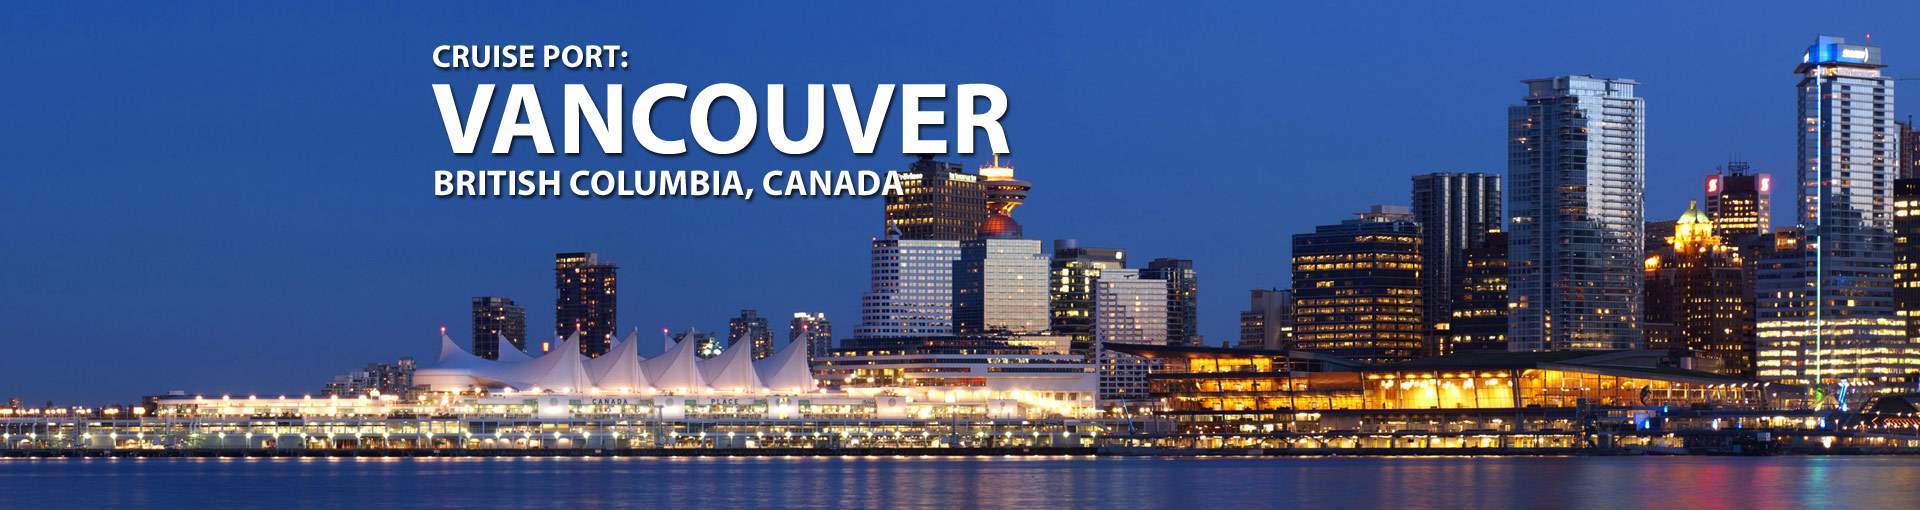 Cruises from Vancouver, British Columbia